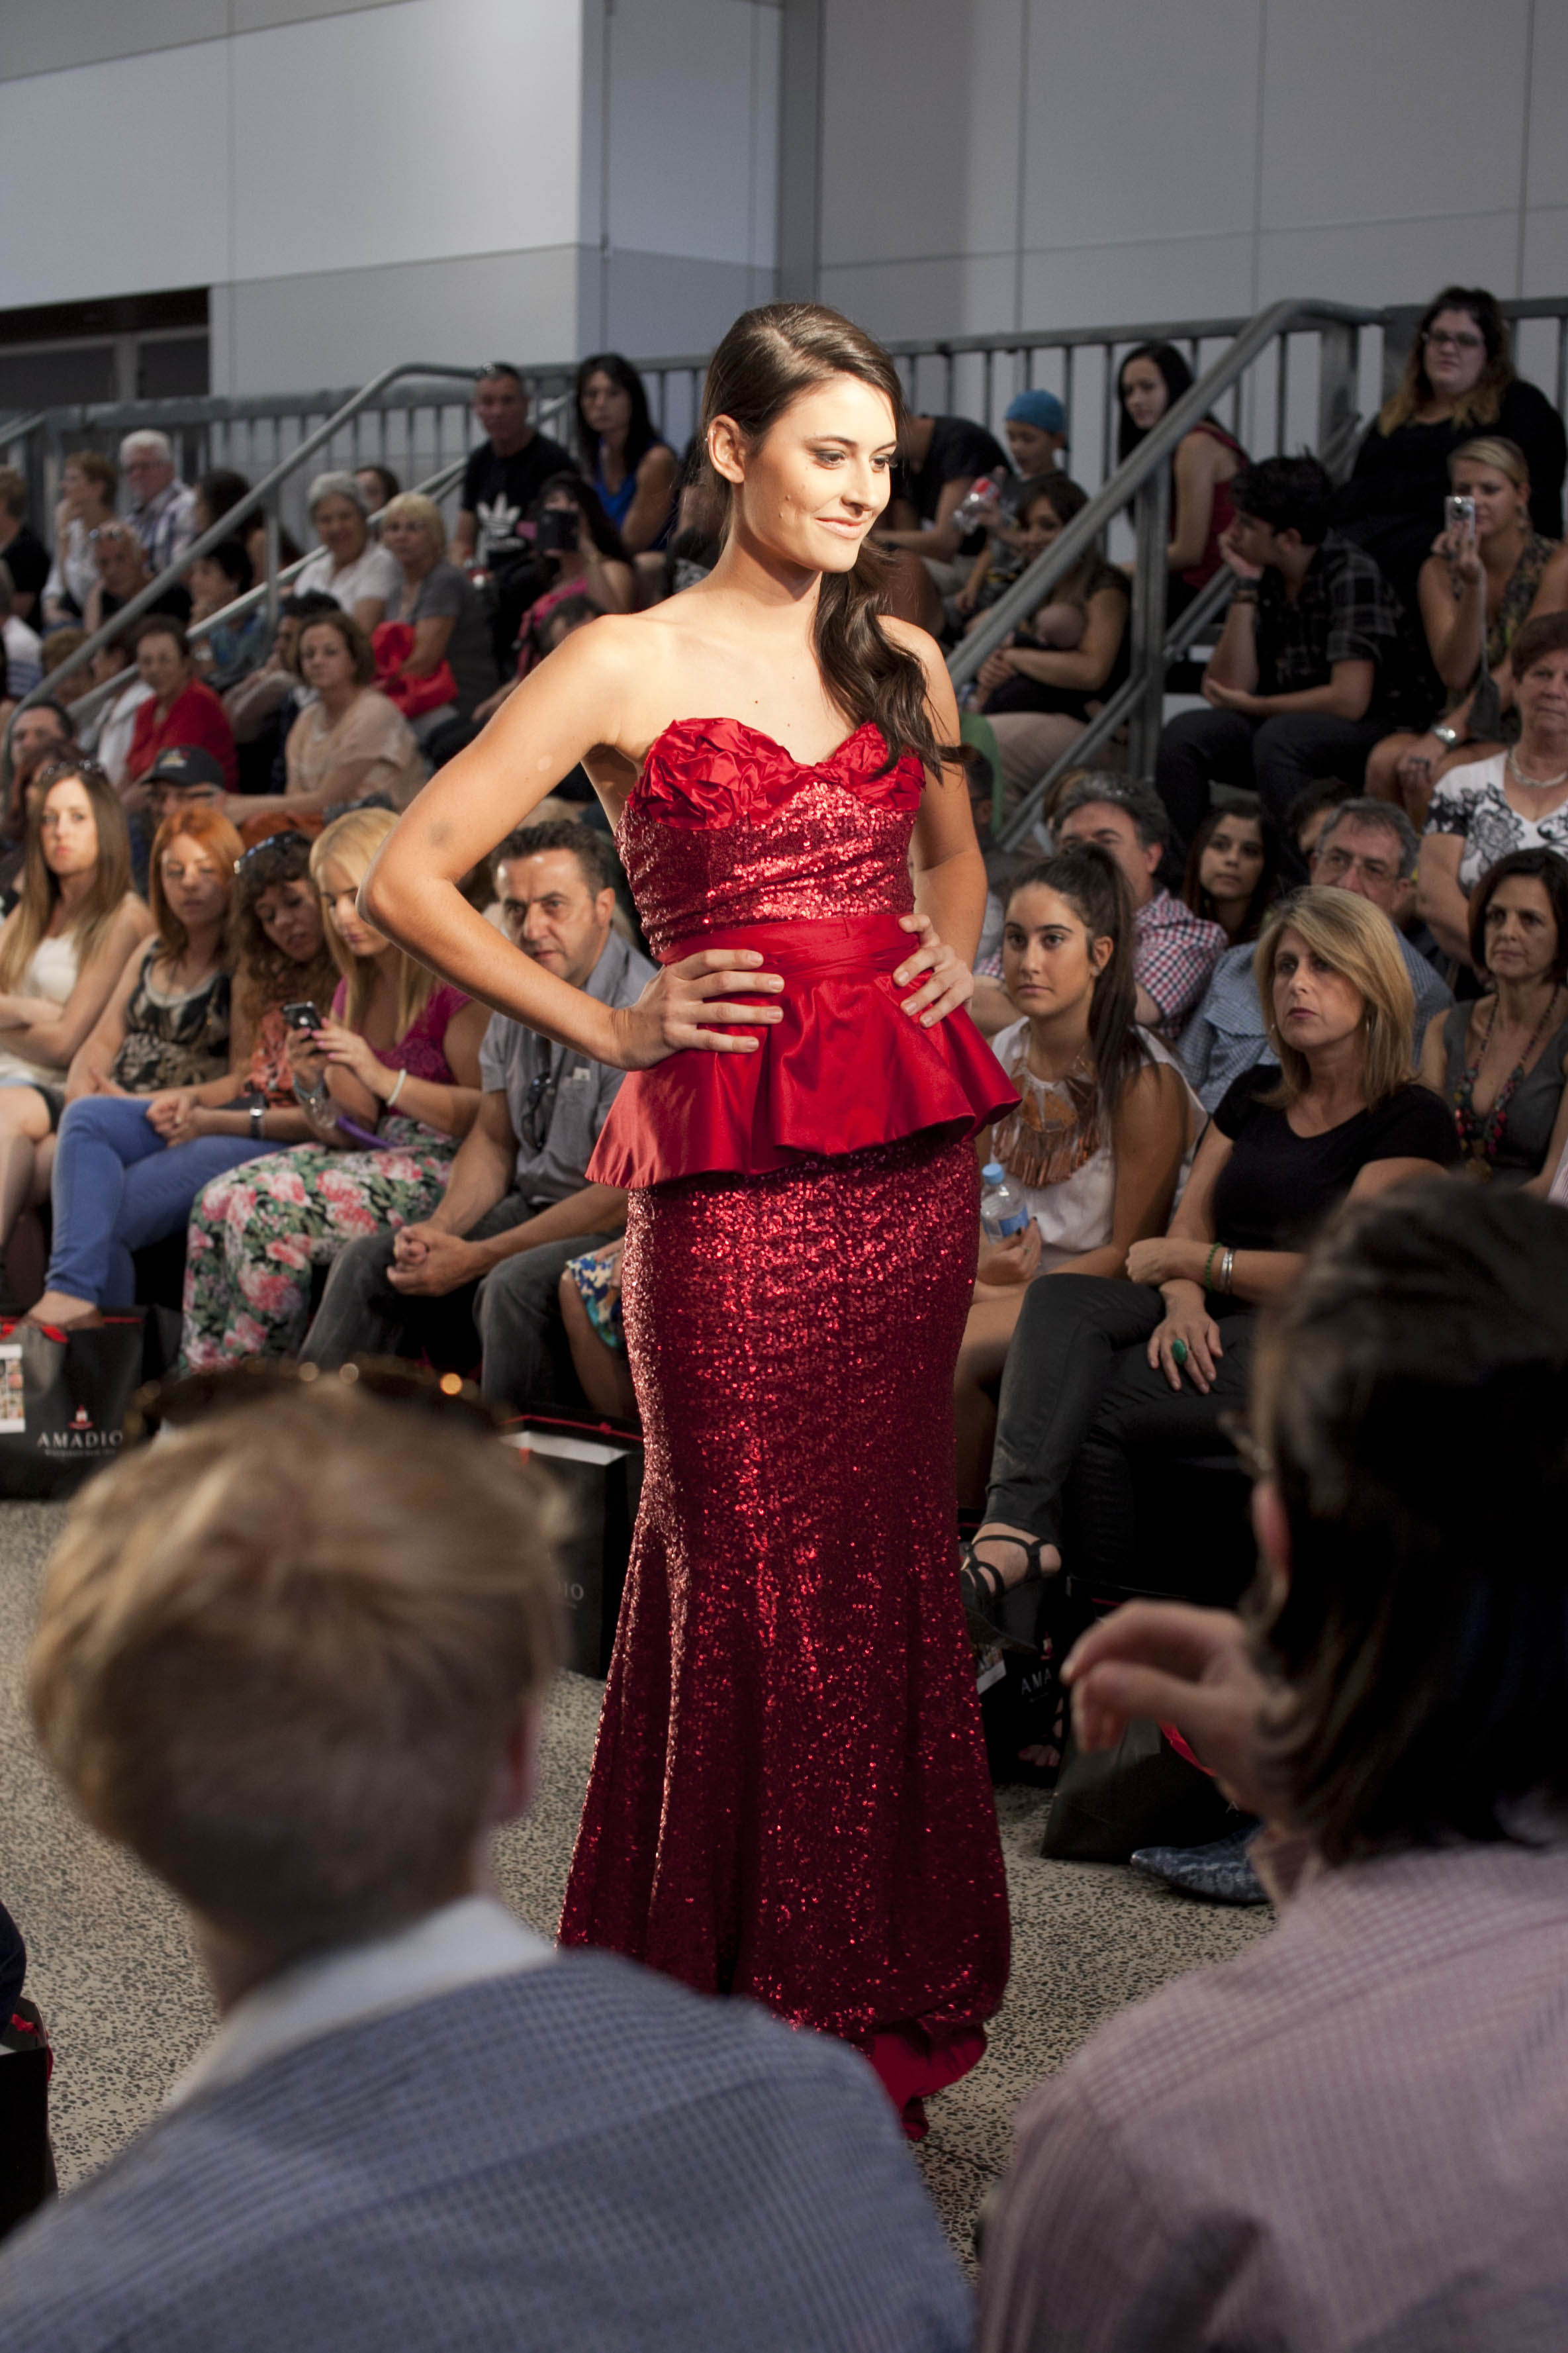 Fishtail silhouettes feature heavily in Tridente's designs, such as this one worn by Finesse face Charlotte Kleut